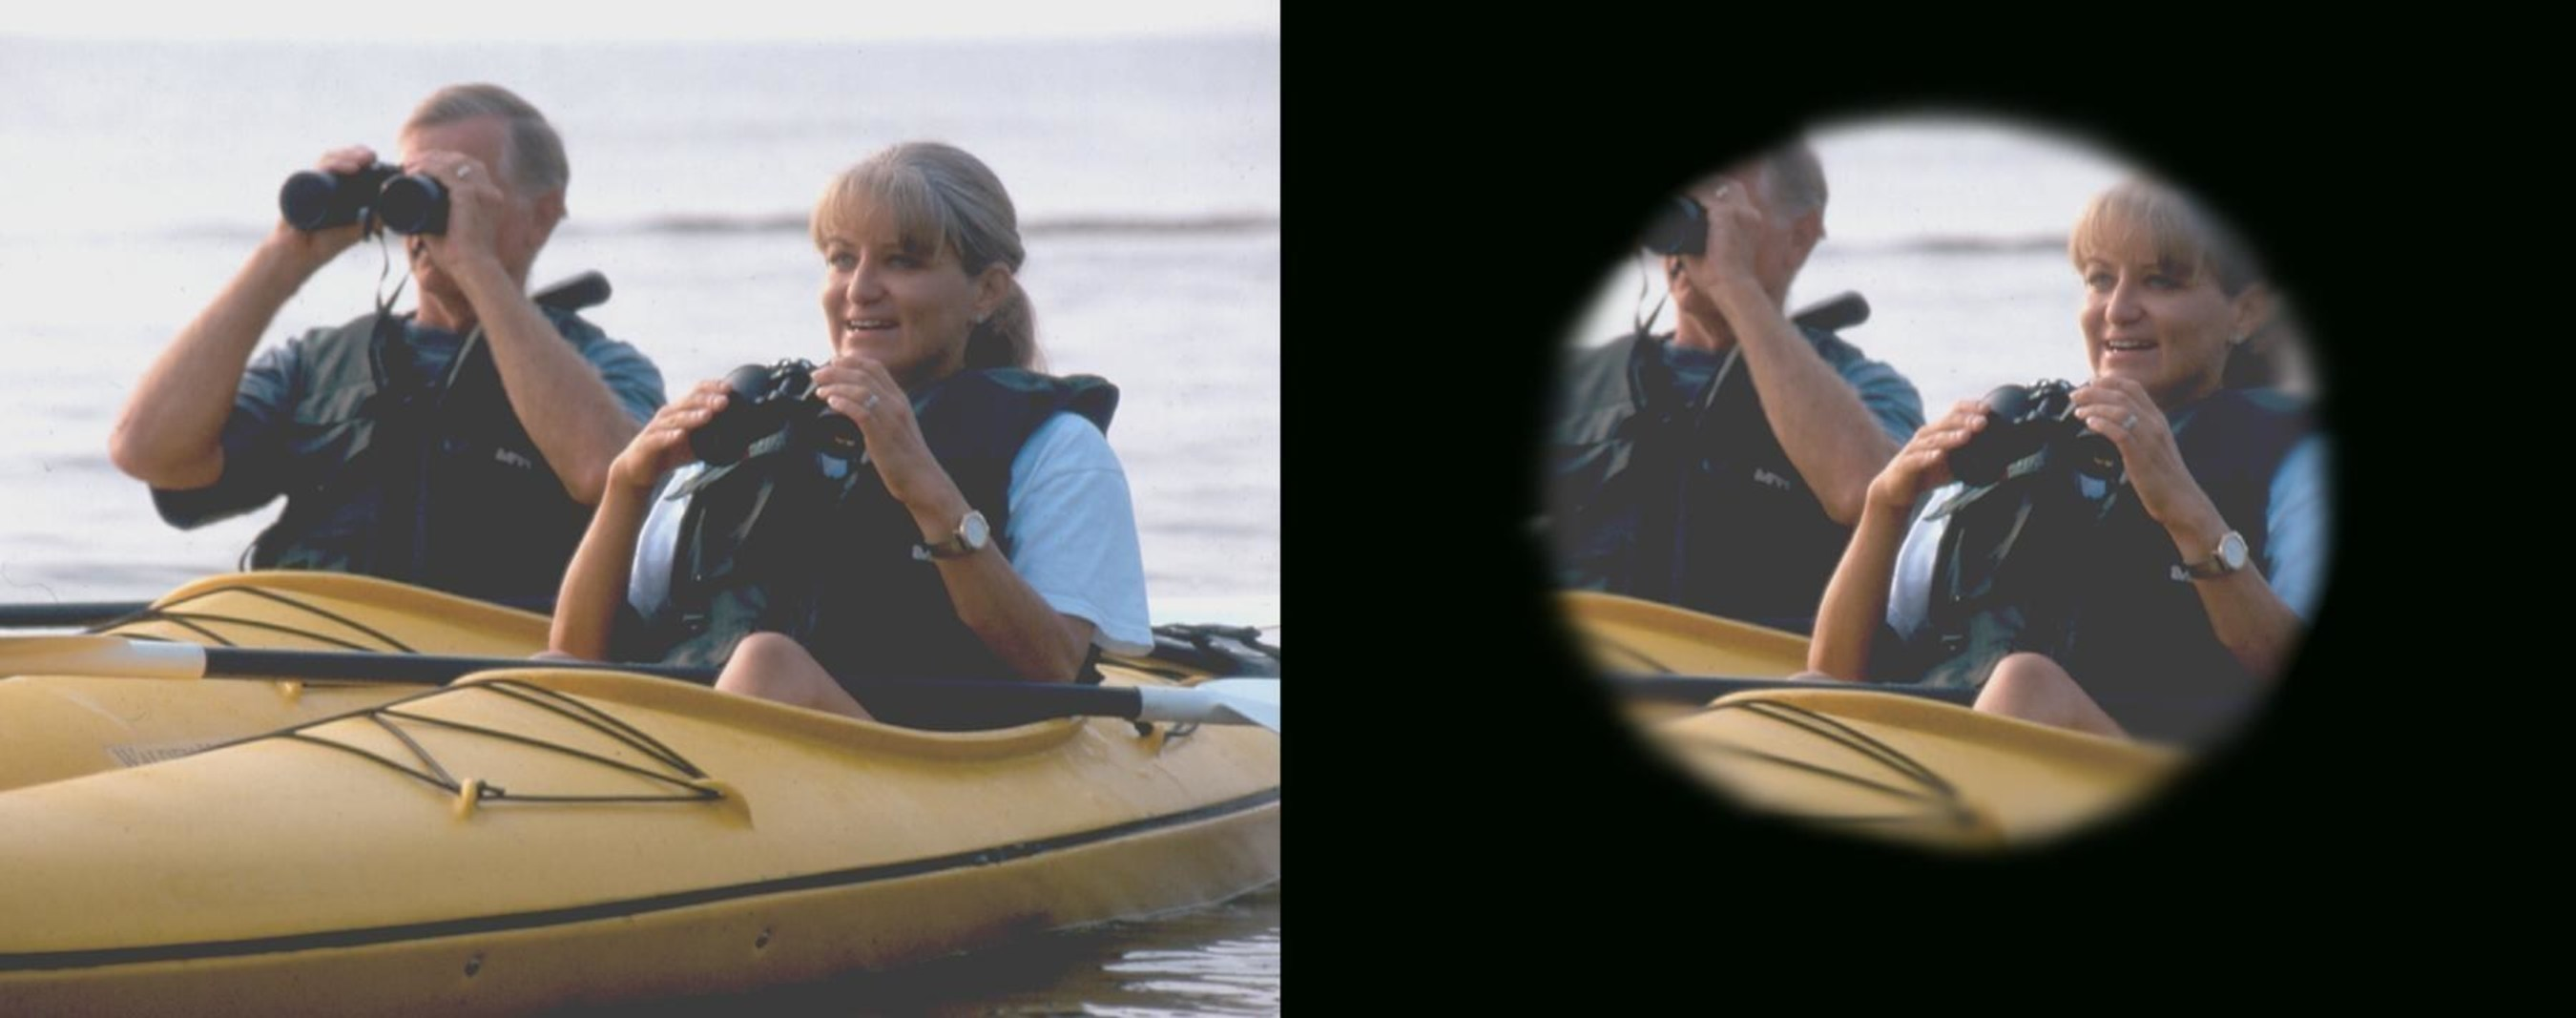 What does glaucoma look like? Glaucoma damages peripheral vision. The image on the left is what healthy eyes would see while the image on the right is what eyes with moderate glaucoma would see. (C) 2015 American Academy of Ophthalmology.